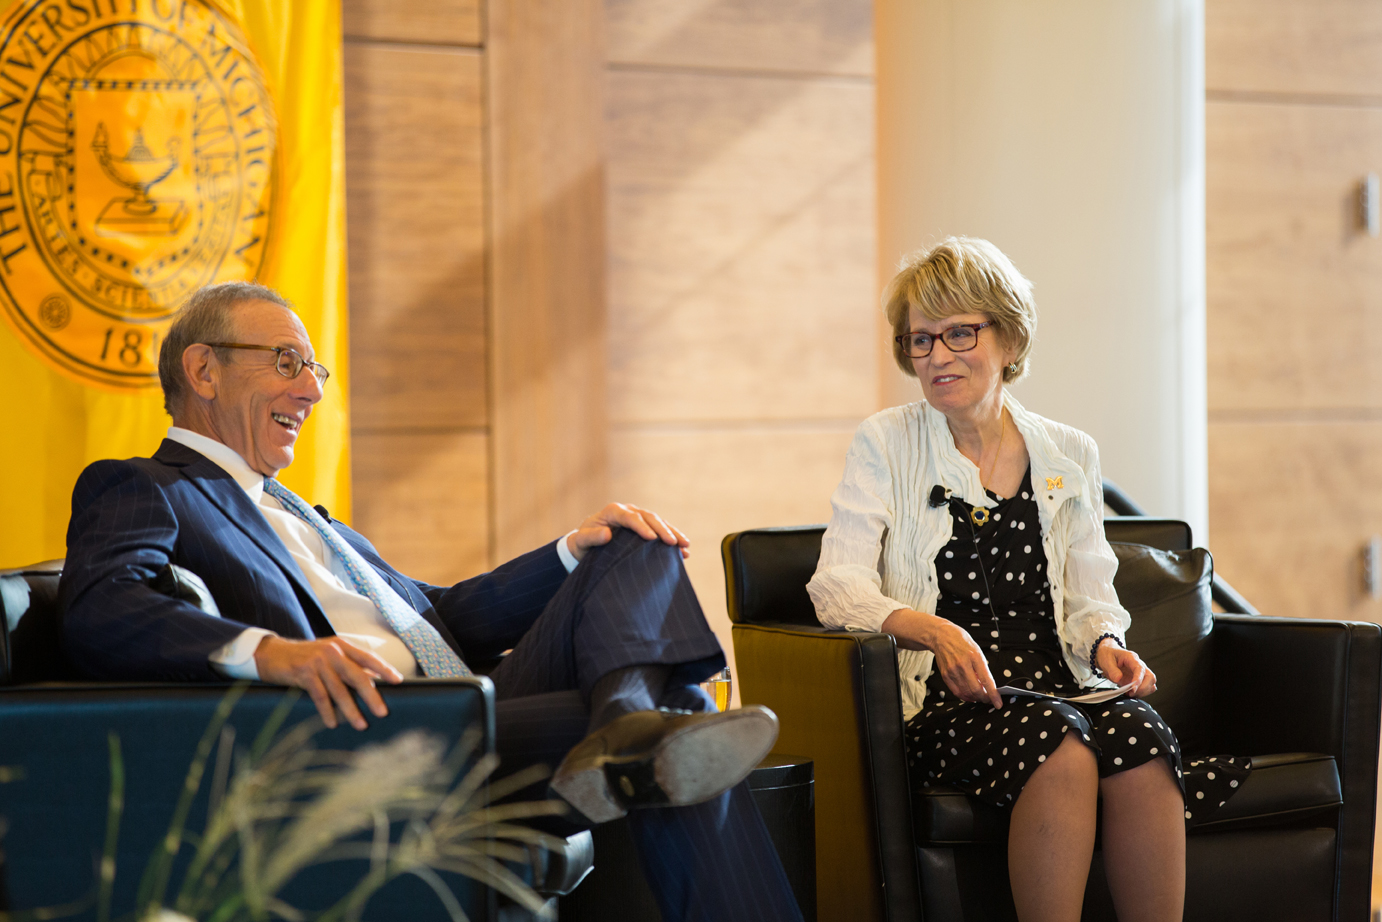 Stephen M. Ross and Mary Sue Coleman at today's press conference. Image credit: Michigan Photography